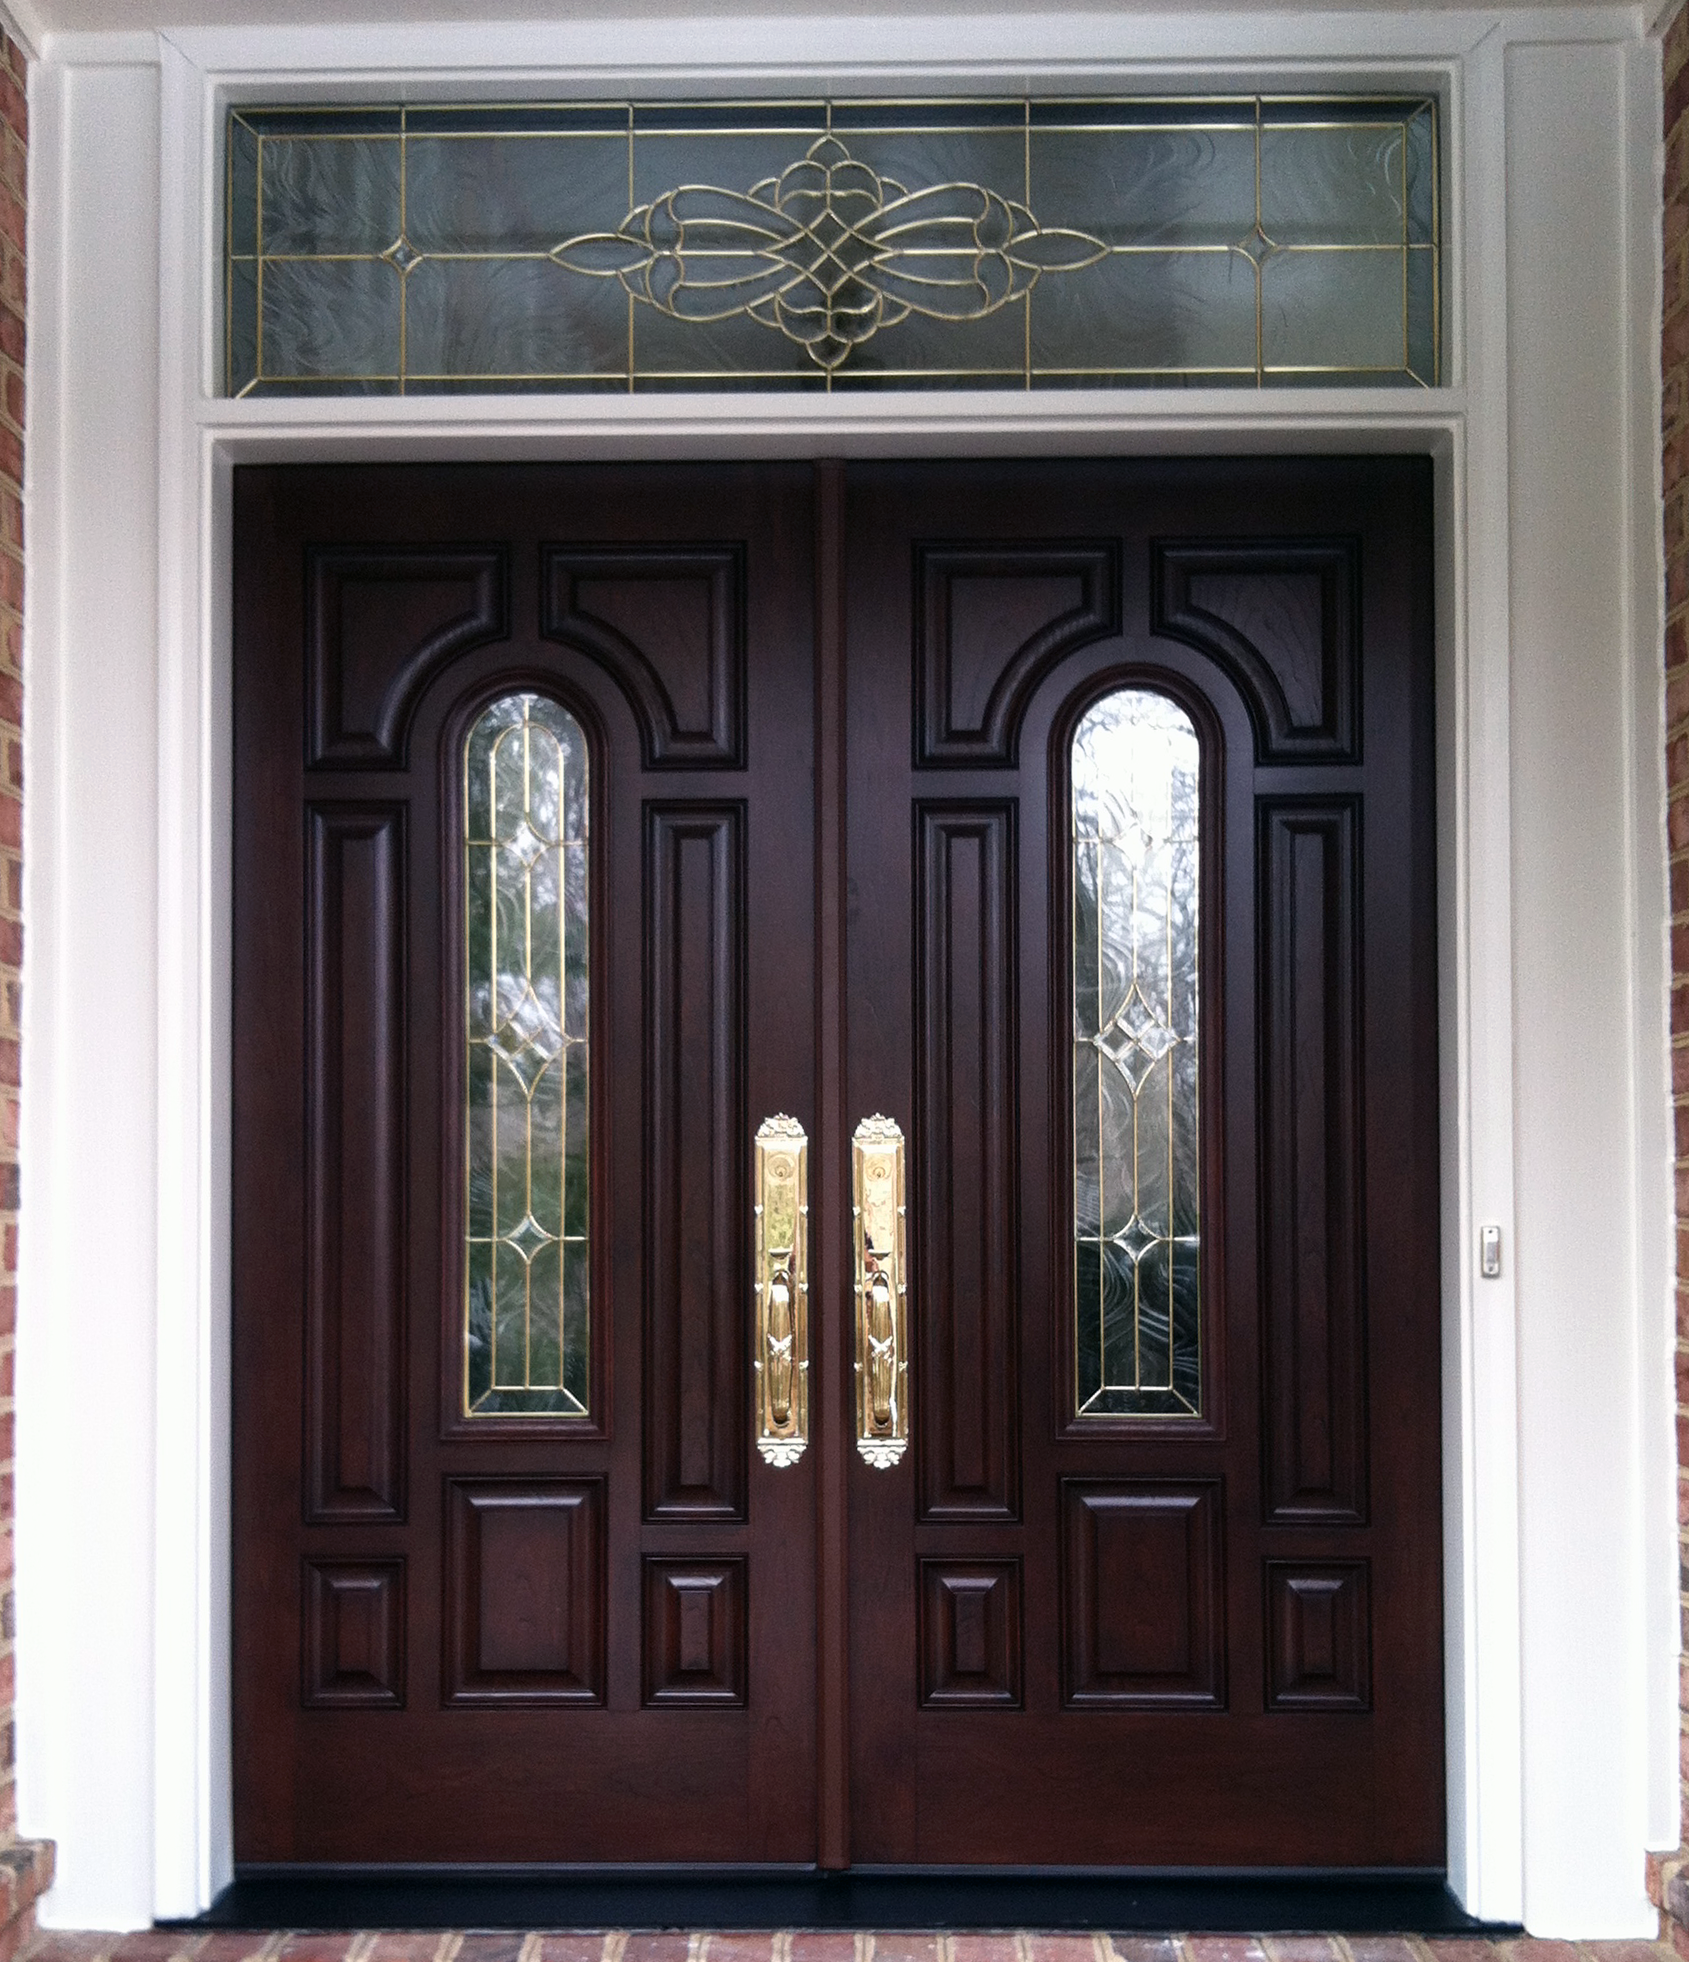 French wood front doors - Nova Exteriors Installed This Provia Signet French Entry Door System With St Jane Decor Glass Yesterday